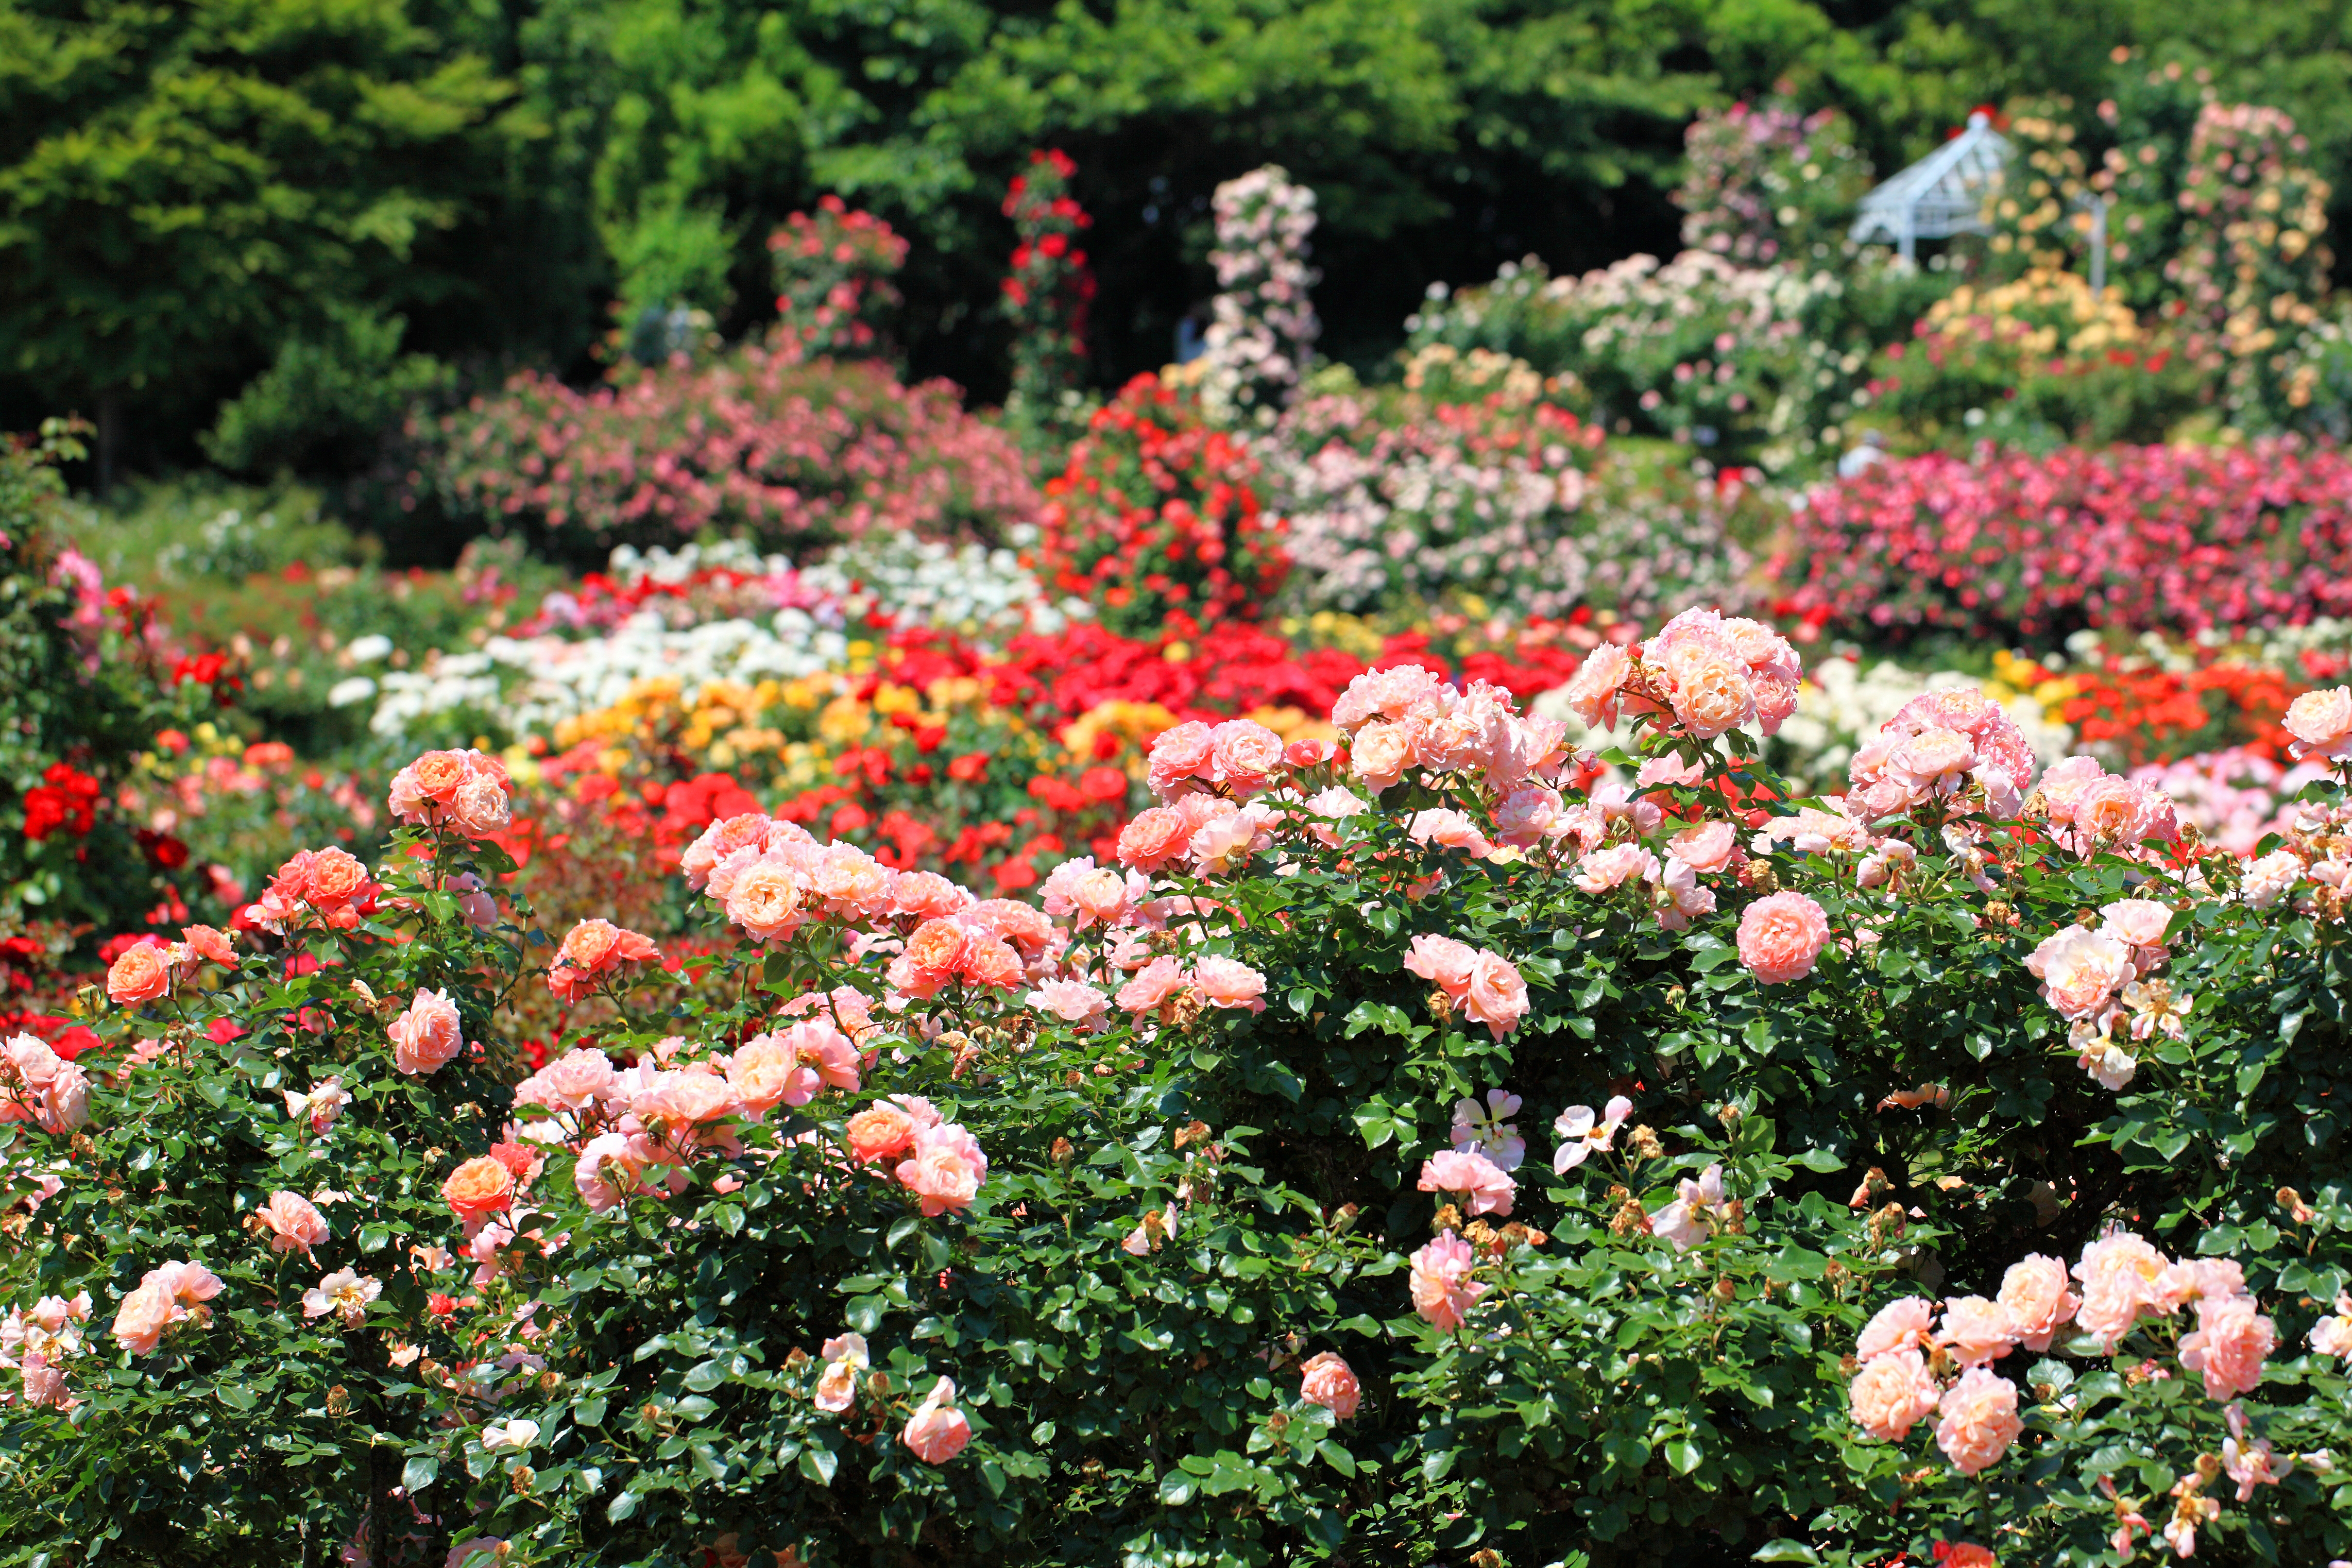 Your own rose garden can provide you with bouquets to fill every room of your home.